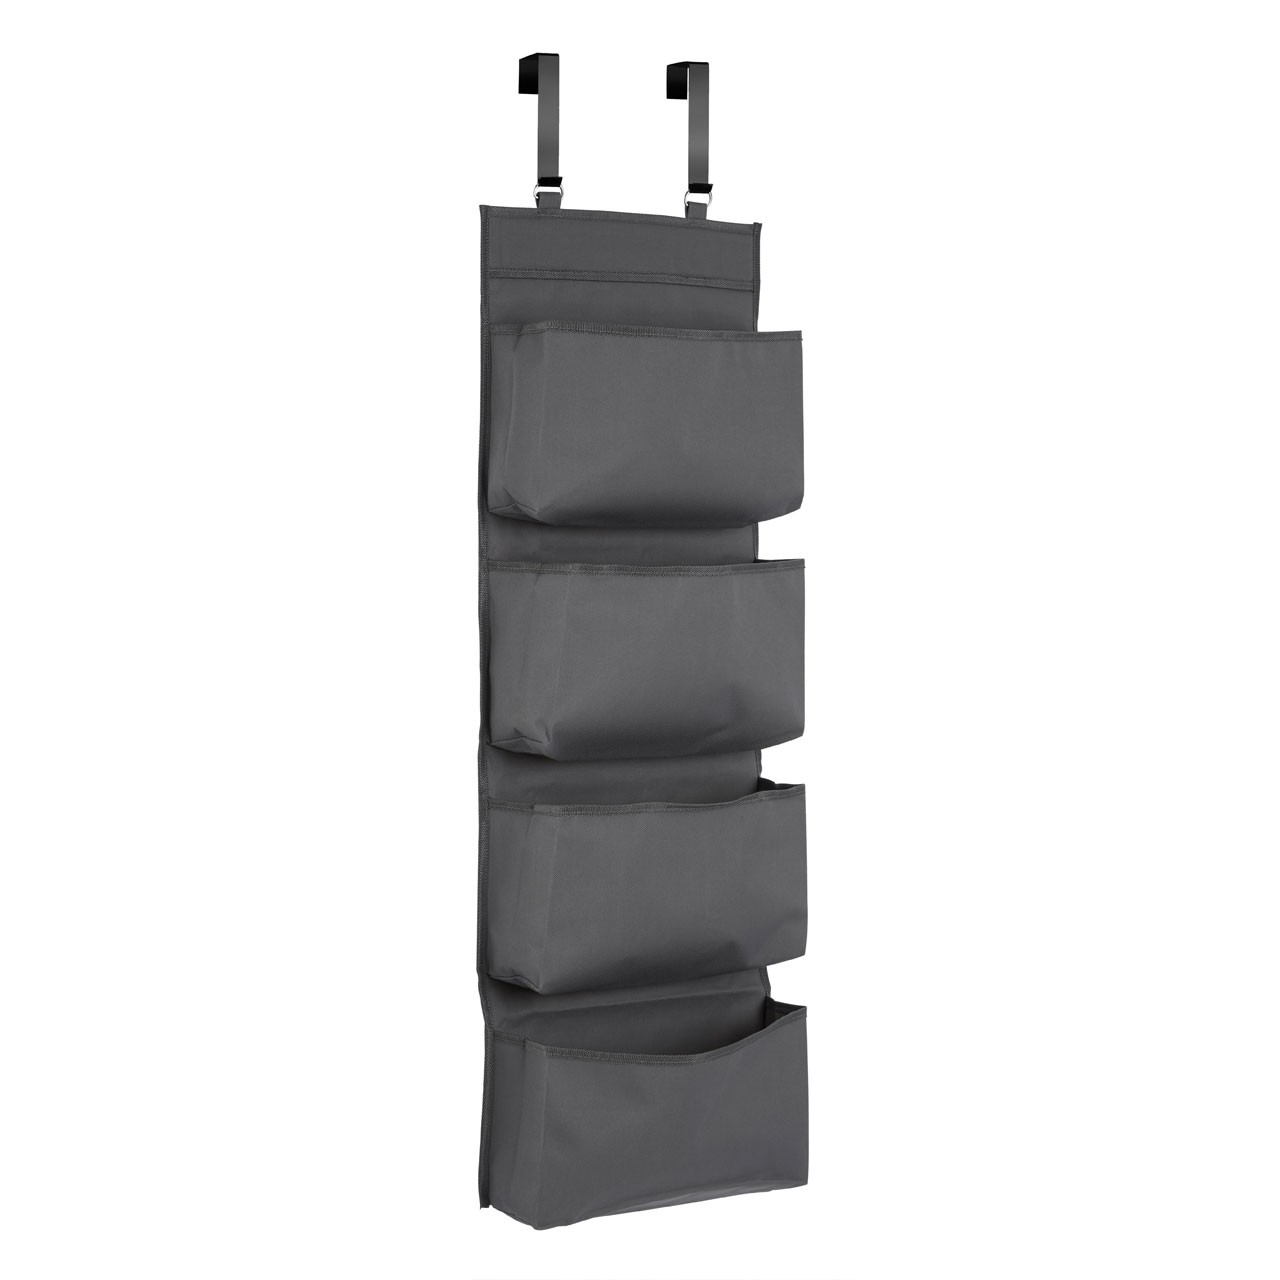 Prime Furnishing 4-Tier Over Door Hanging Organiser - Grey